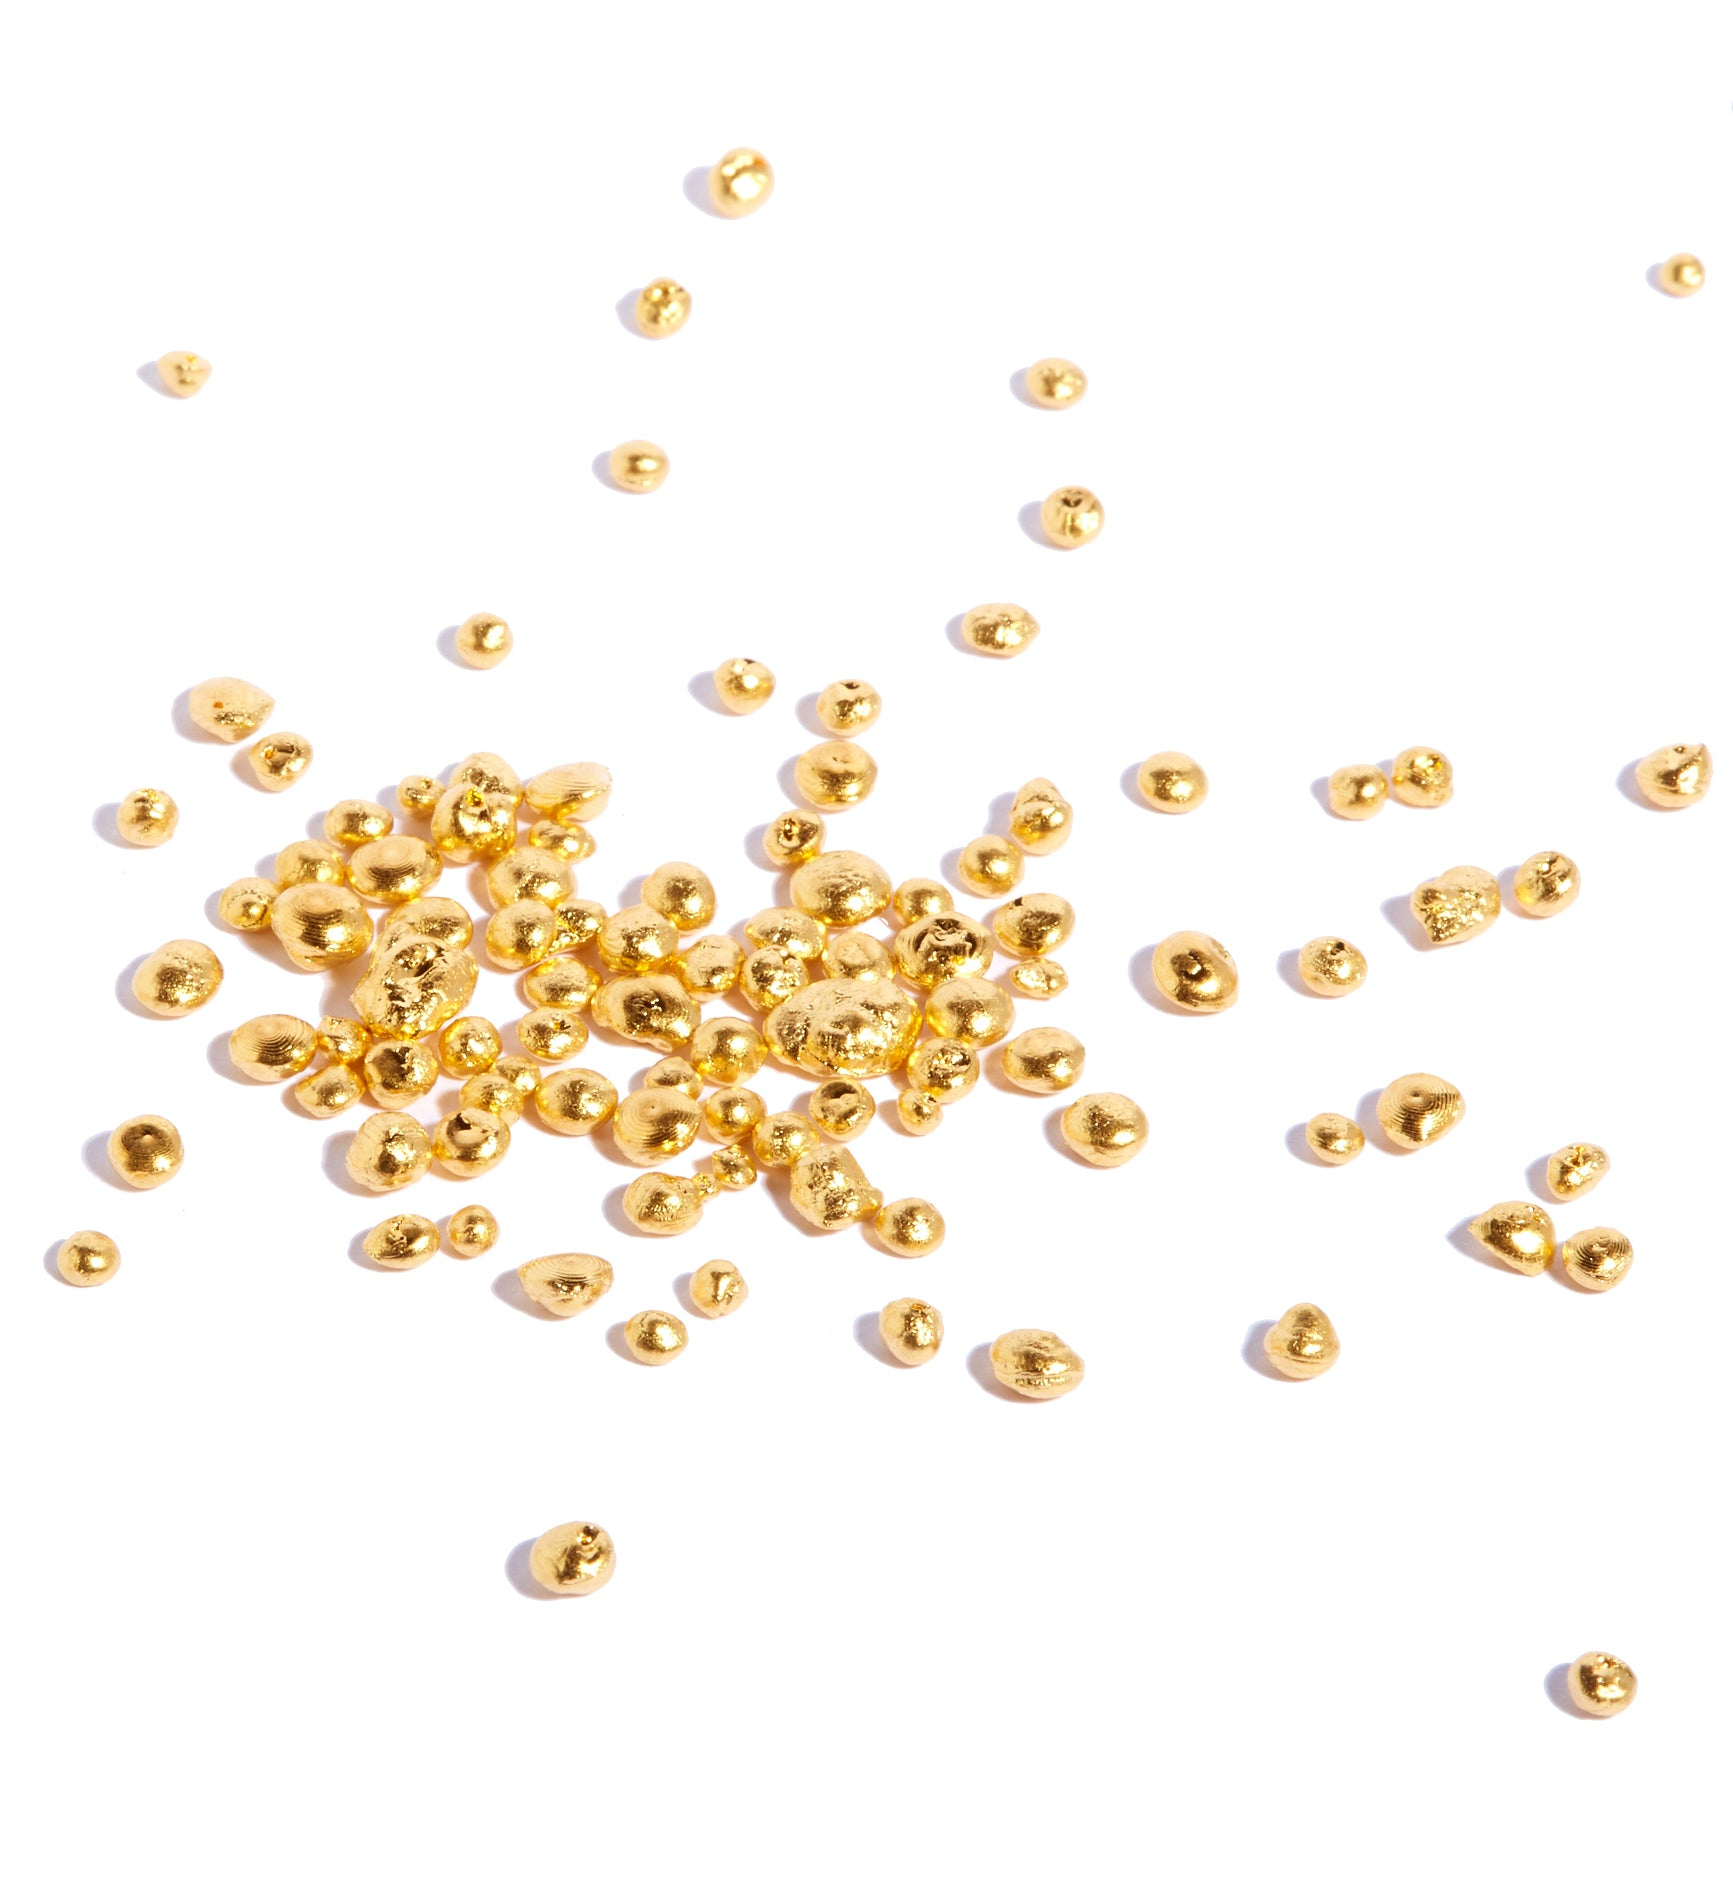 https://cdn.shopify.com/s/files/1/0571/9261/t/15/assets/gold%20granules-1509686856128.jpg?3192882942855745917